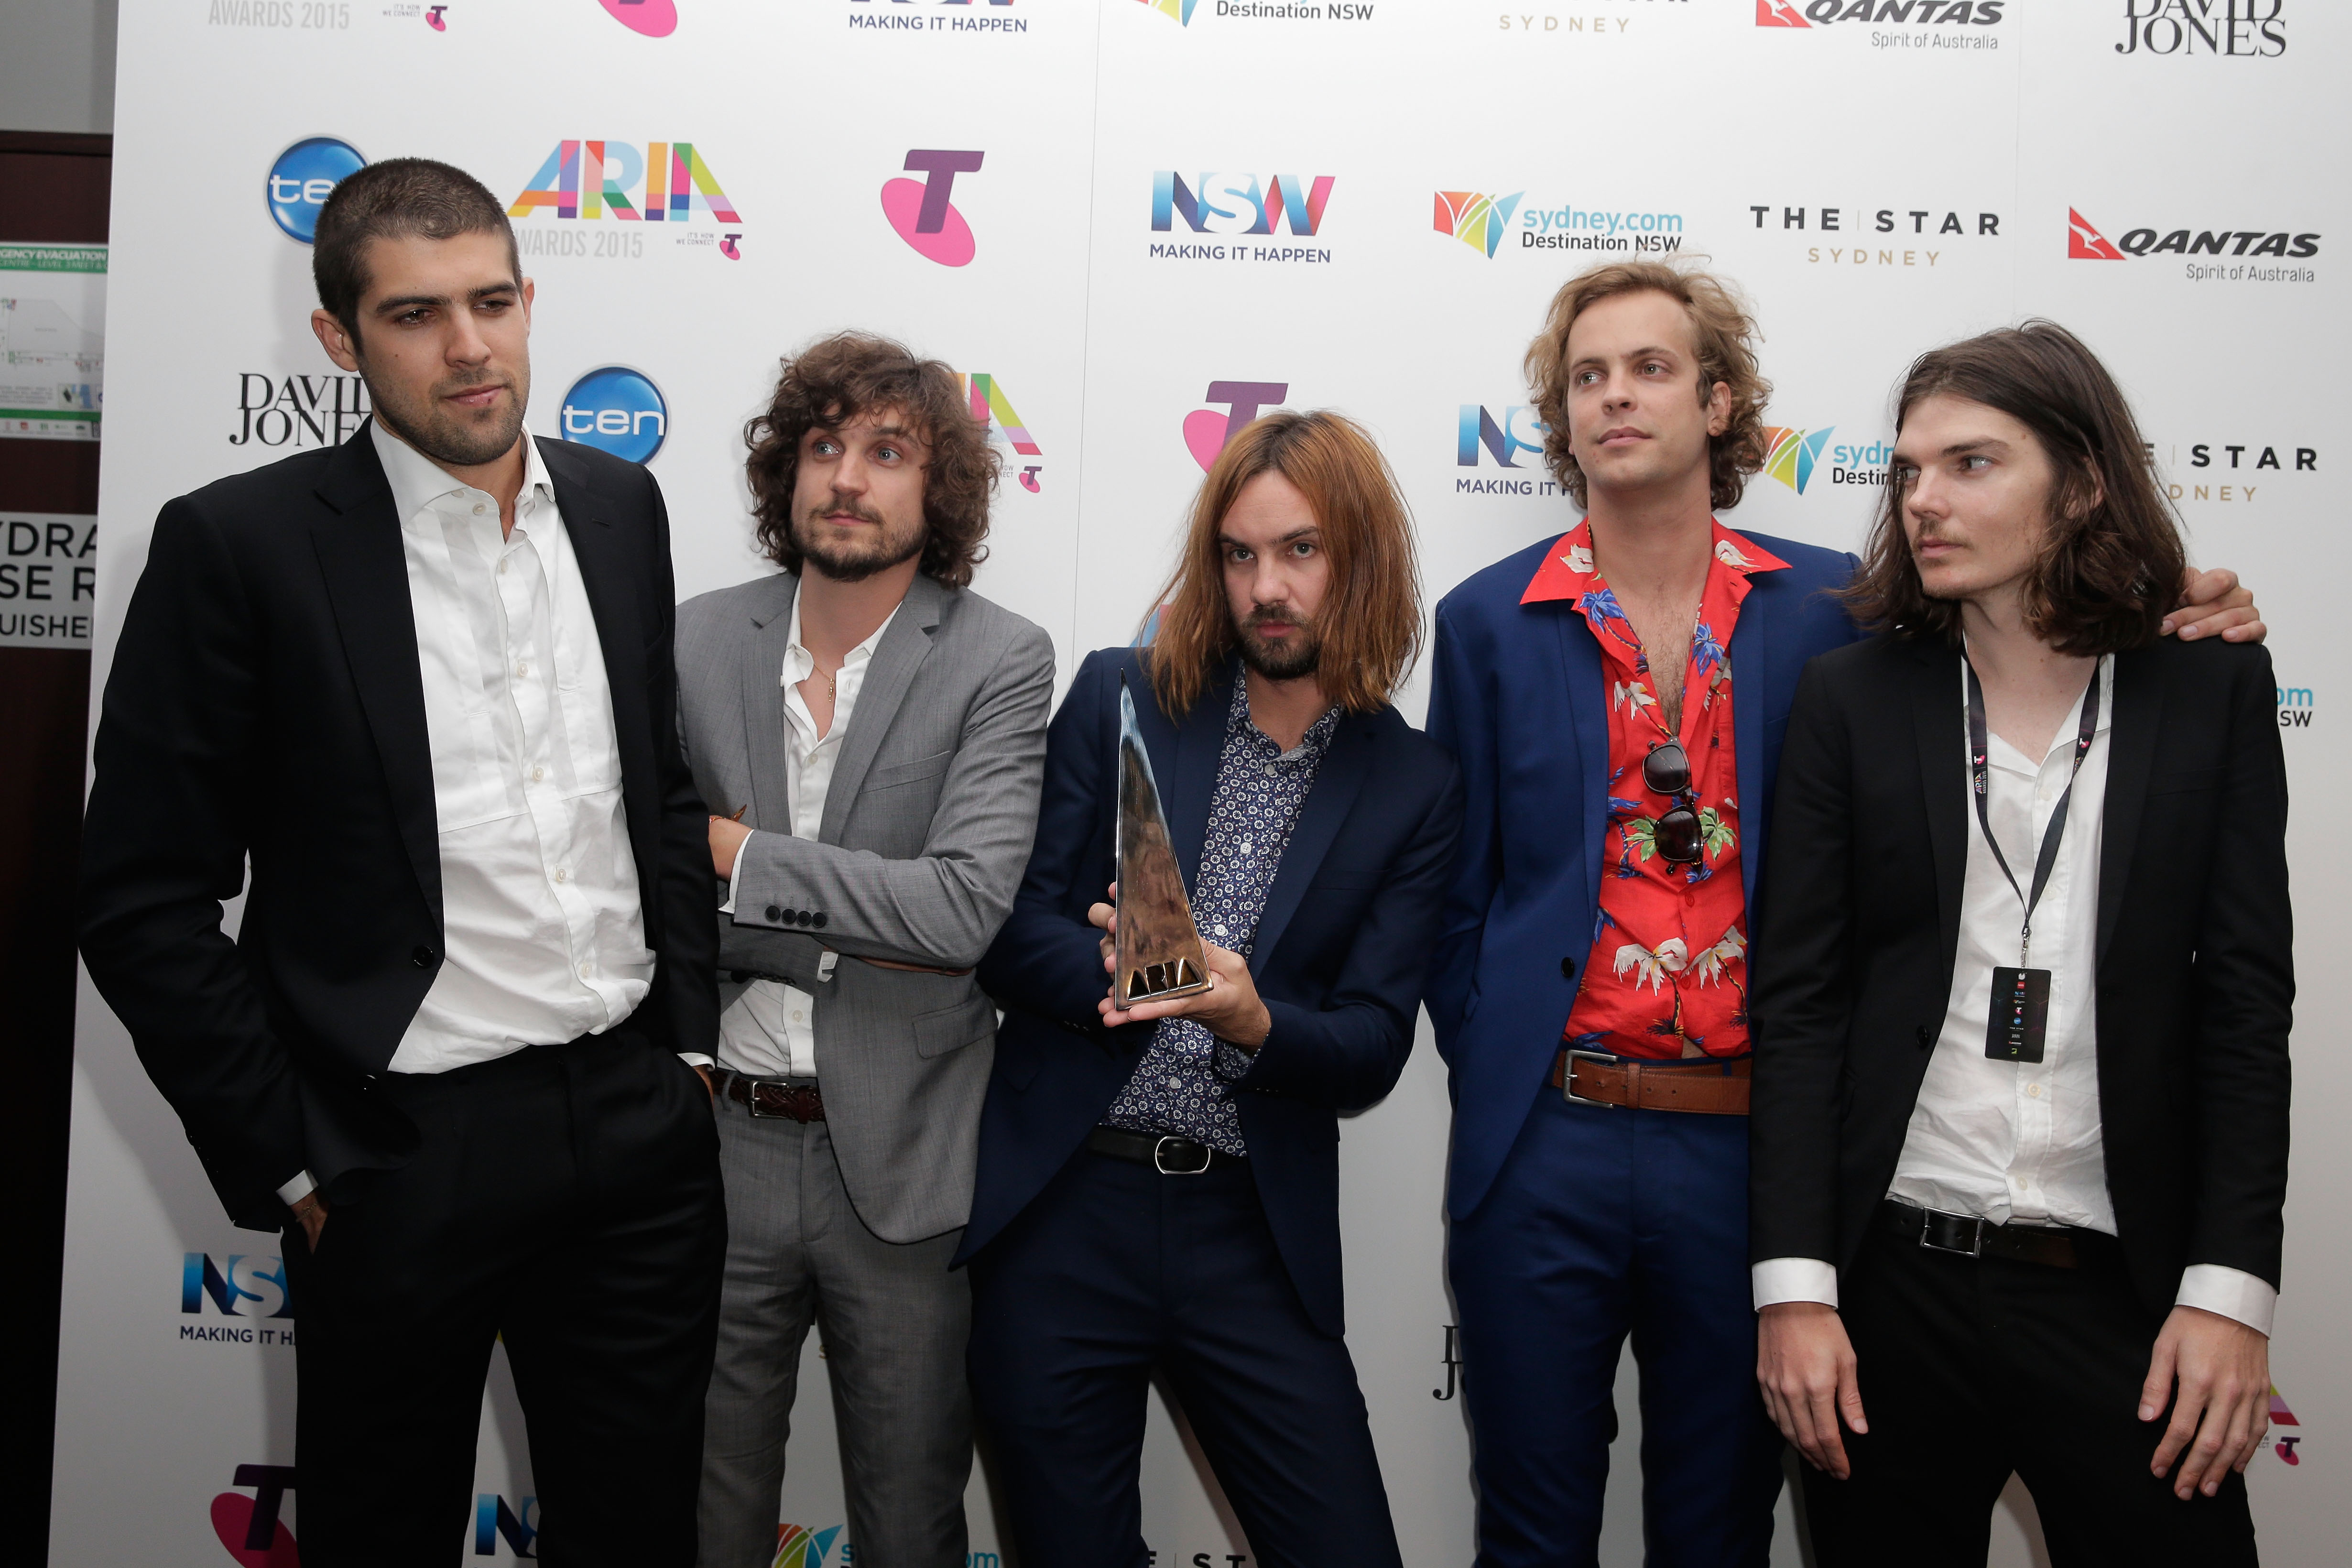 The big winners from the ARIA awards 2015